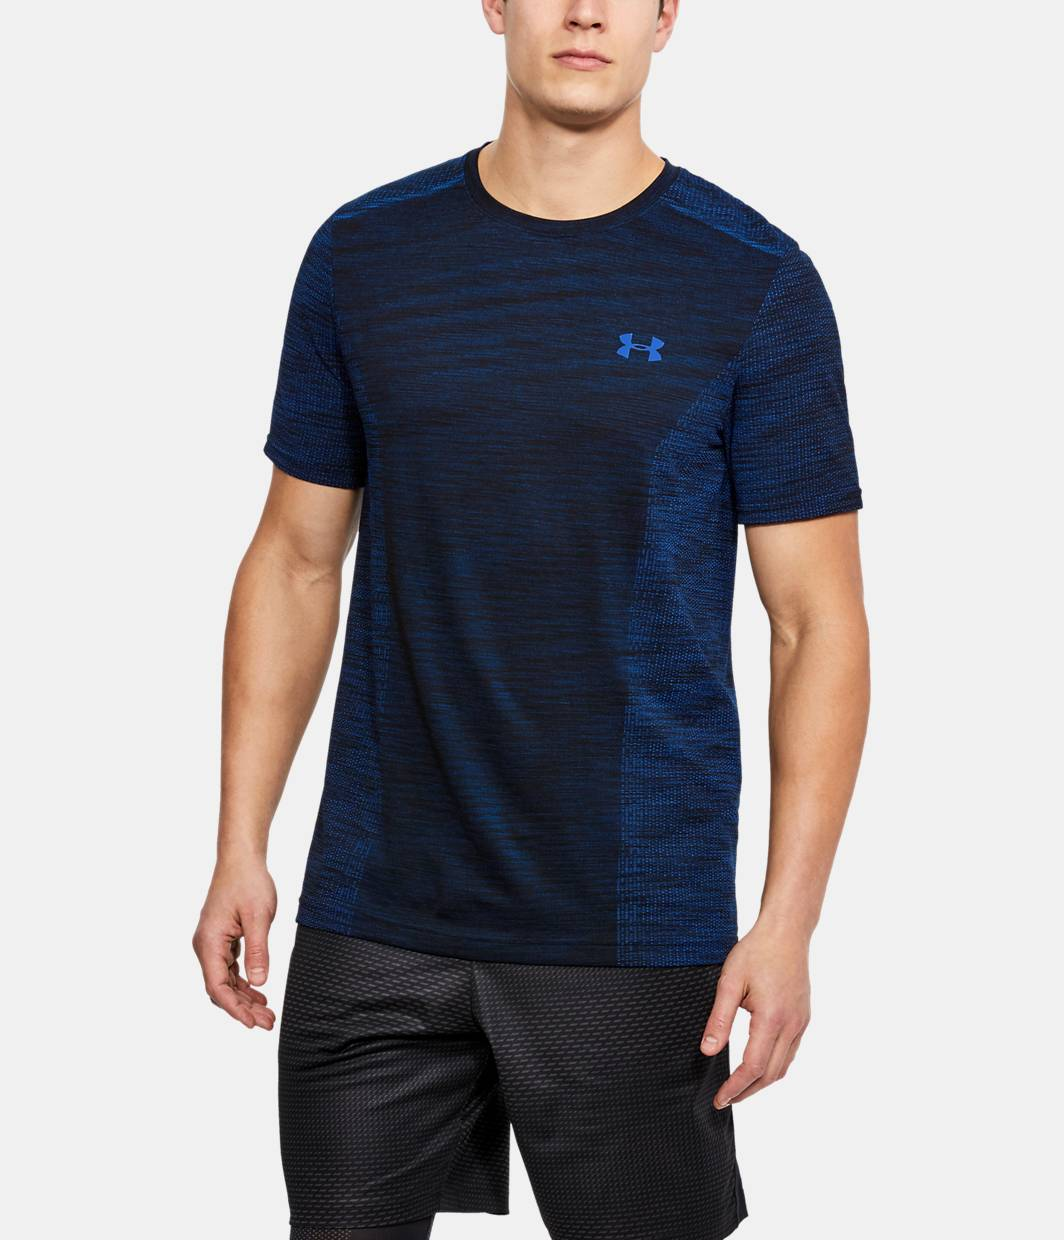 Men's Compression & Short Sleeve Shirts | Under Armour US